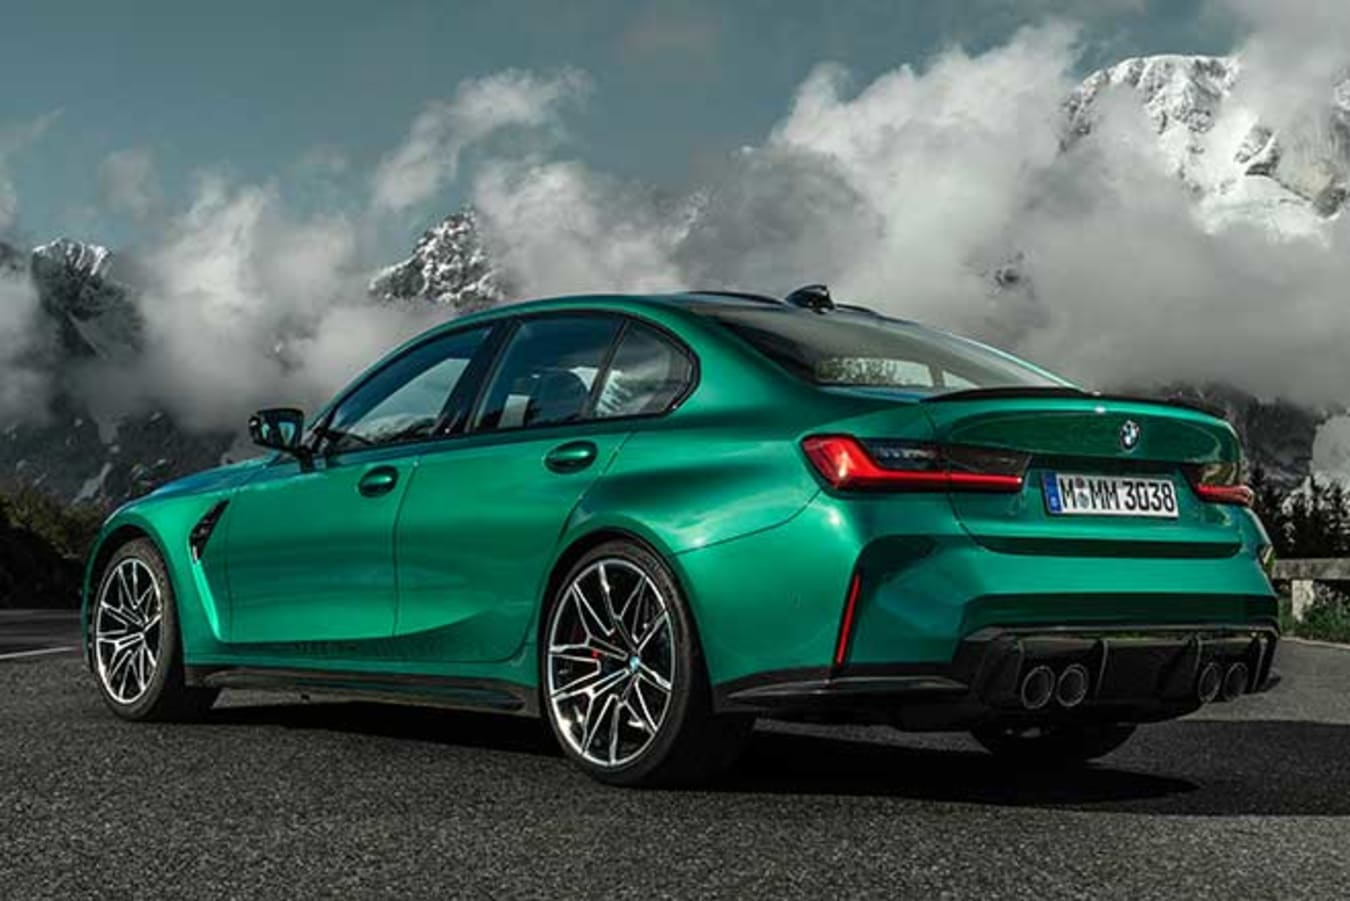 The 2021 BMW M3 Competition uses staggered rims, 19 inches front and 20 inches rear.